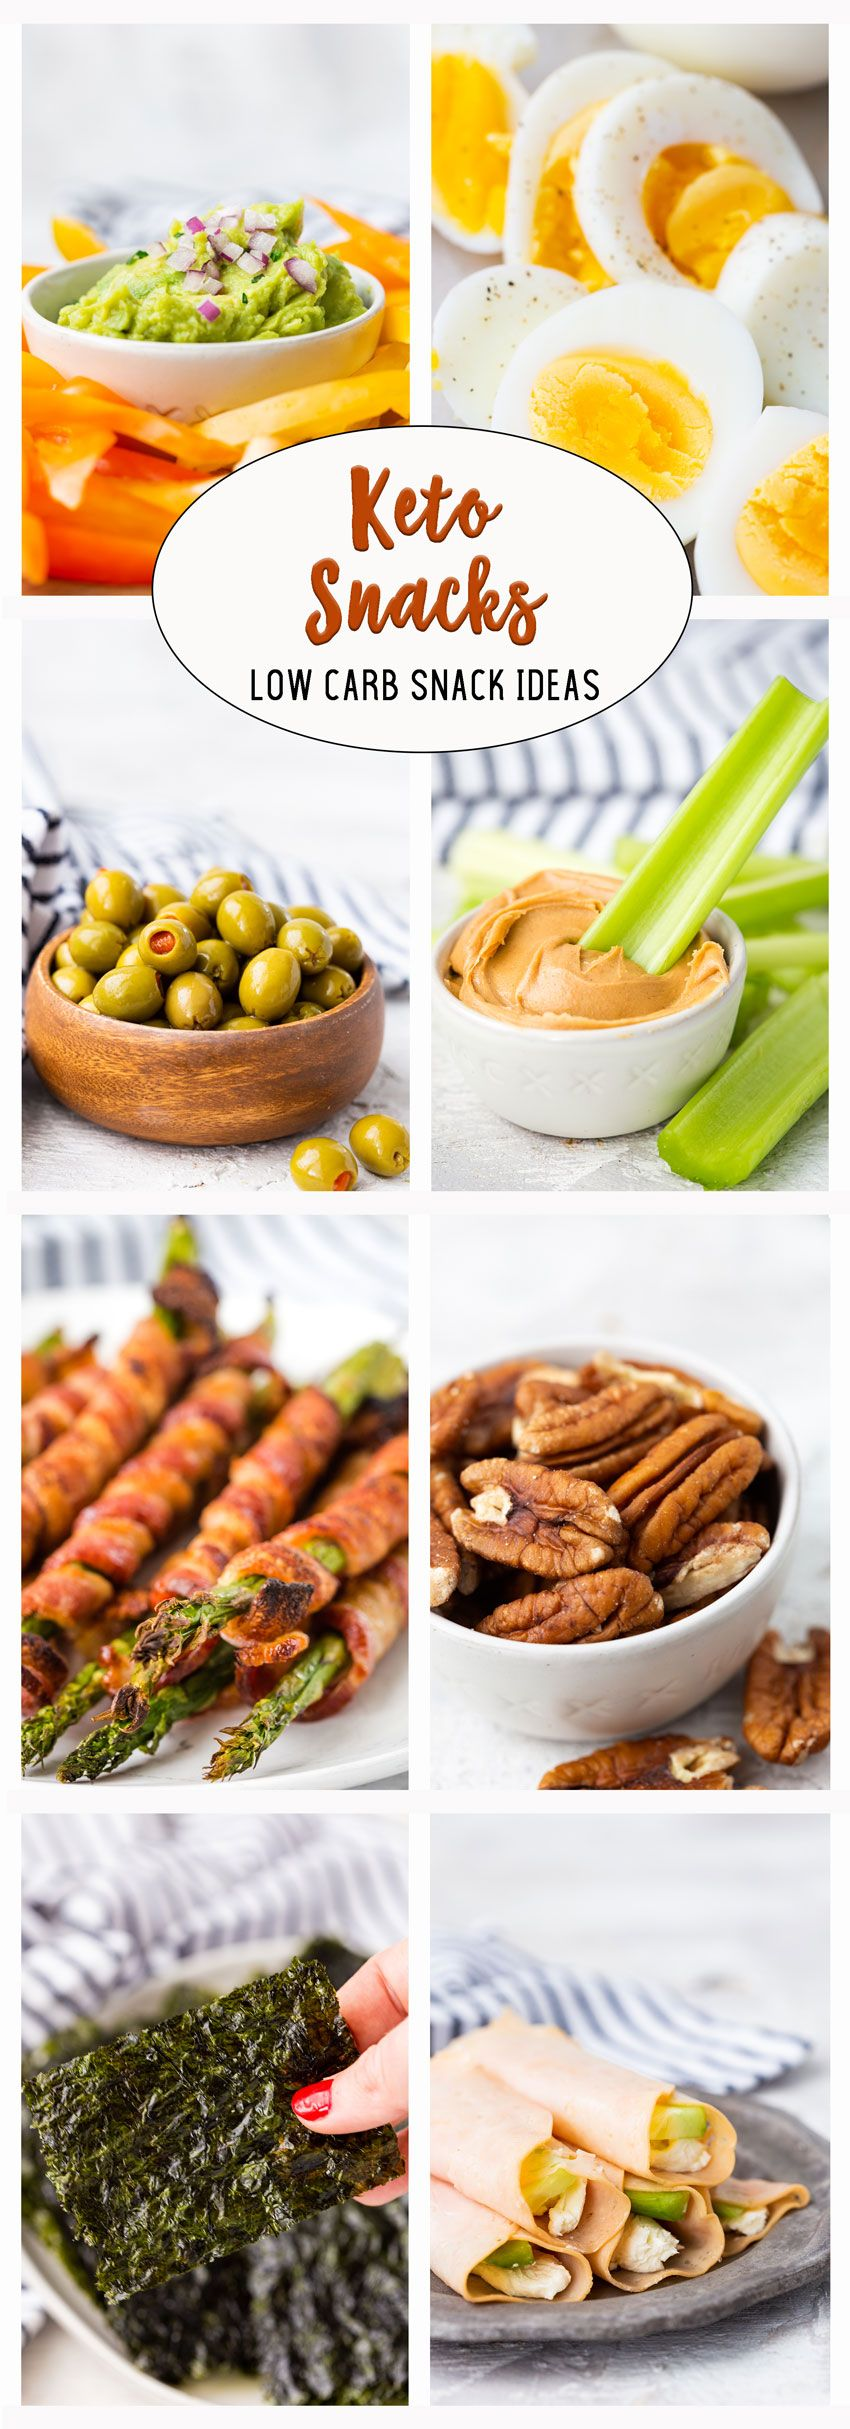 Low-Carb Snacks Keto Diet Snacks images